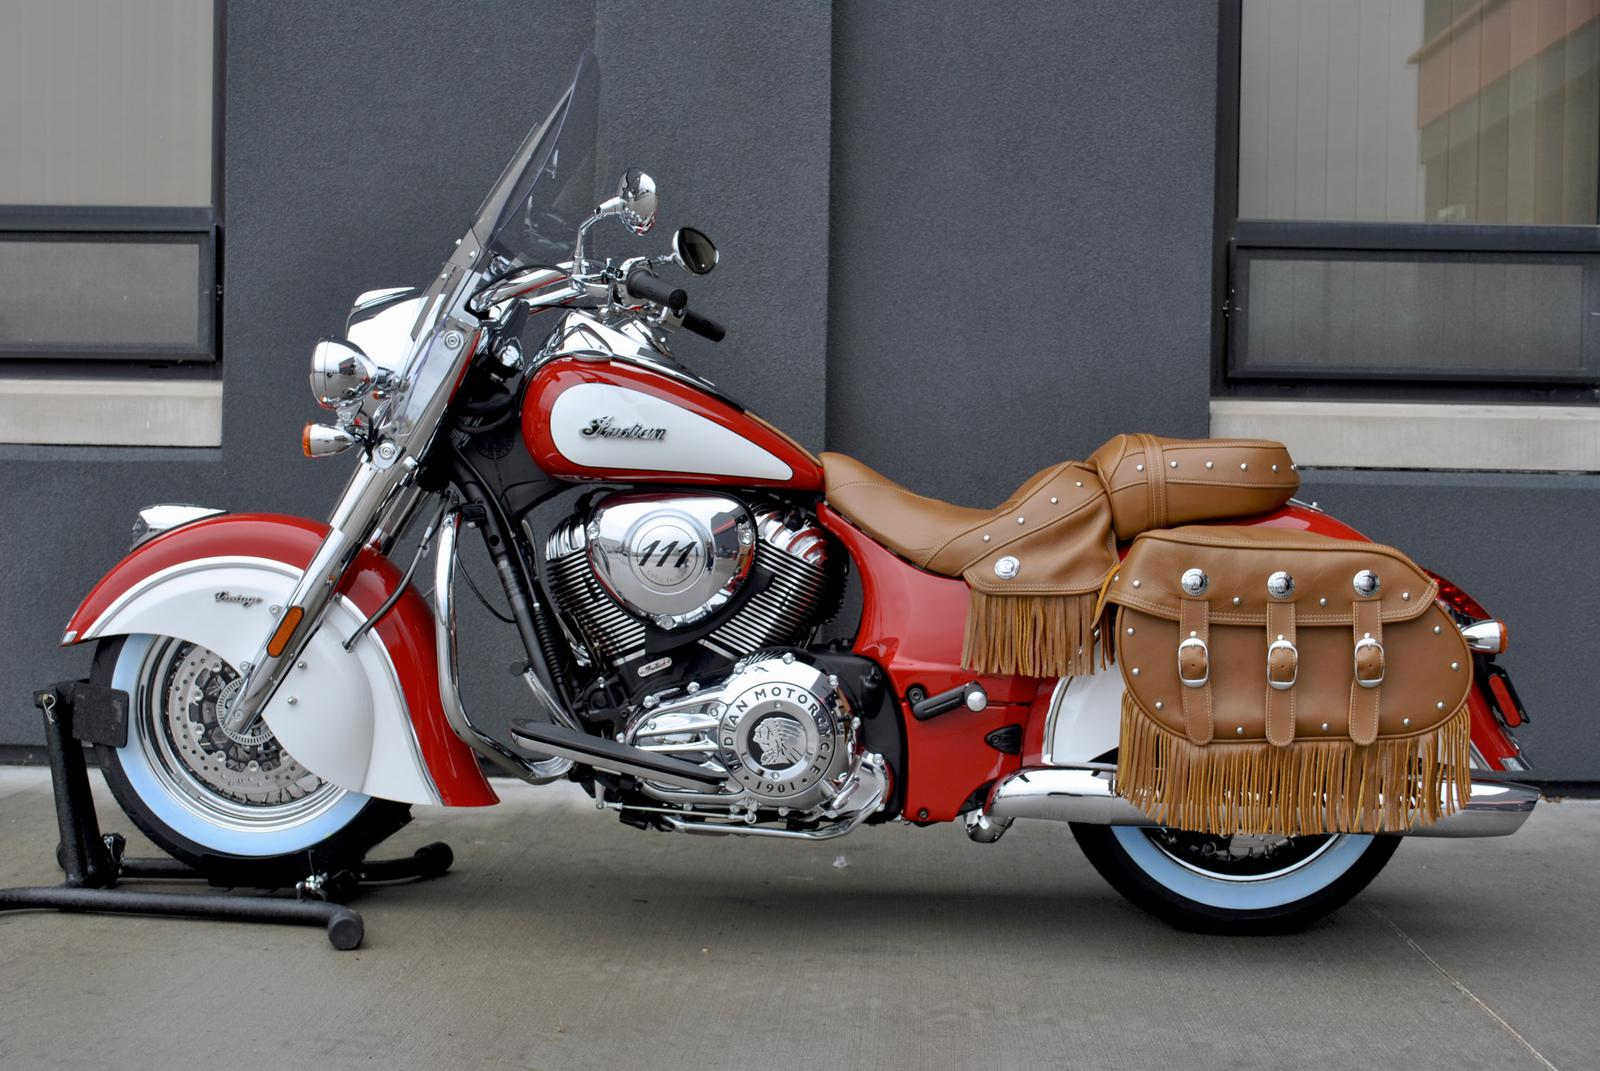 2019 Indian Motorcycle Chief Vintage Icon - N19CVAAAAP for